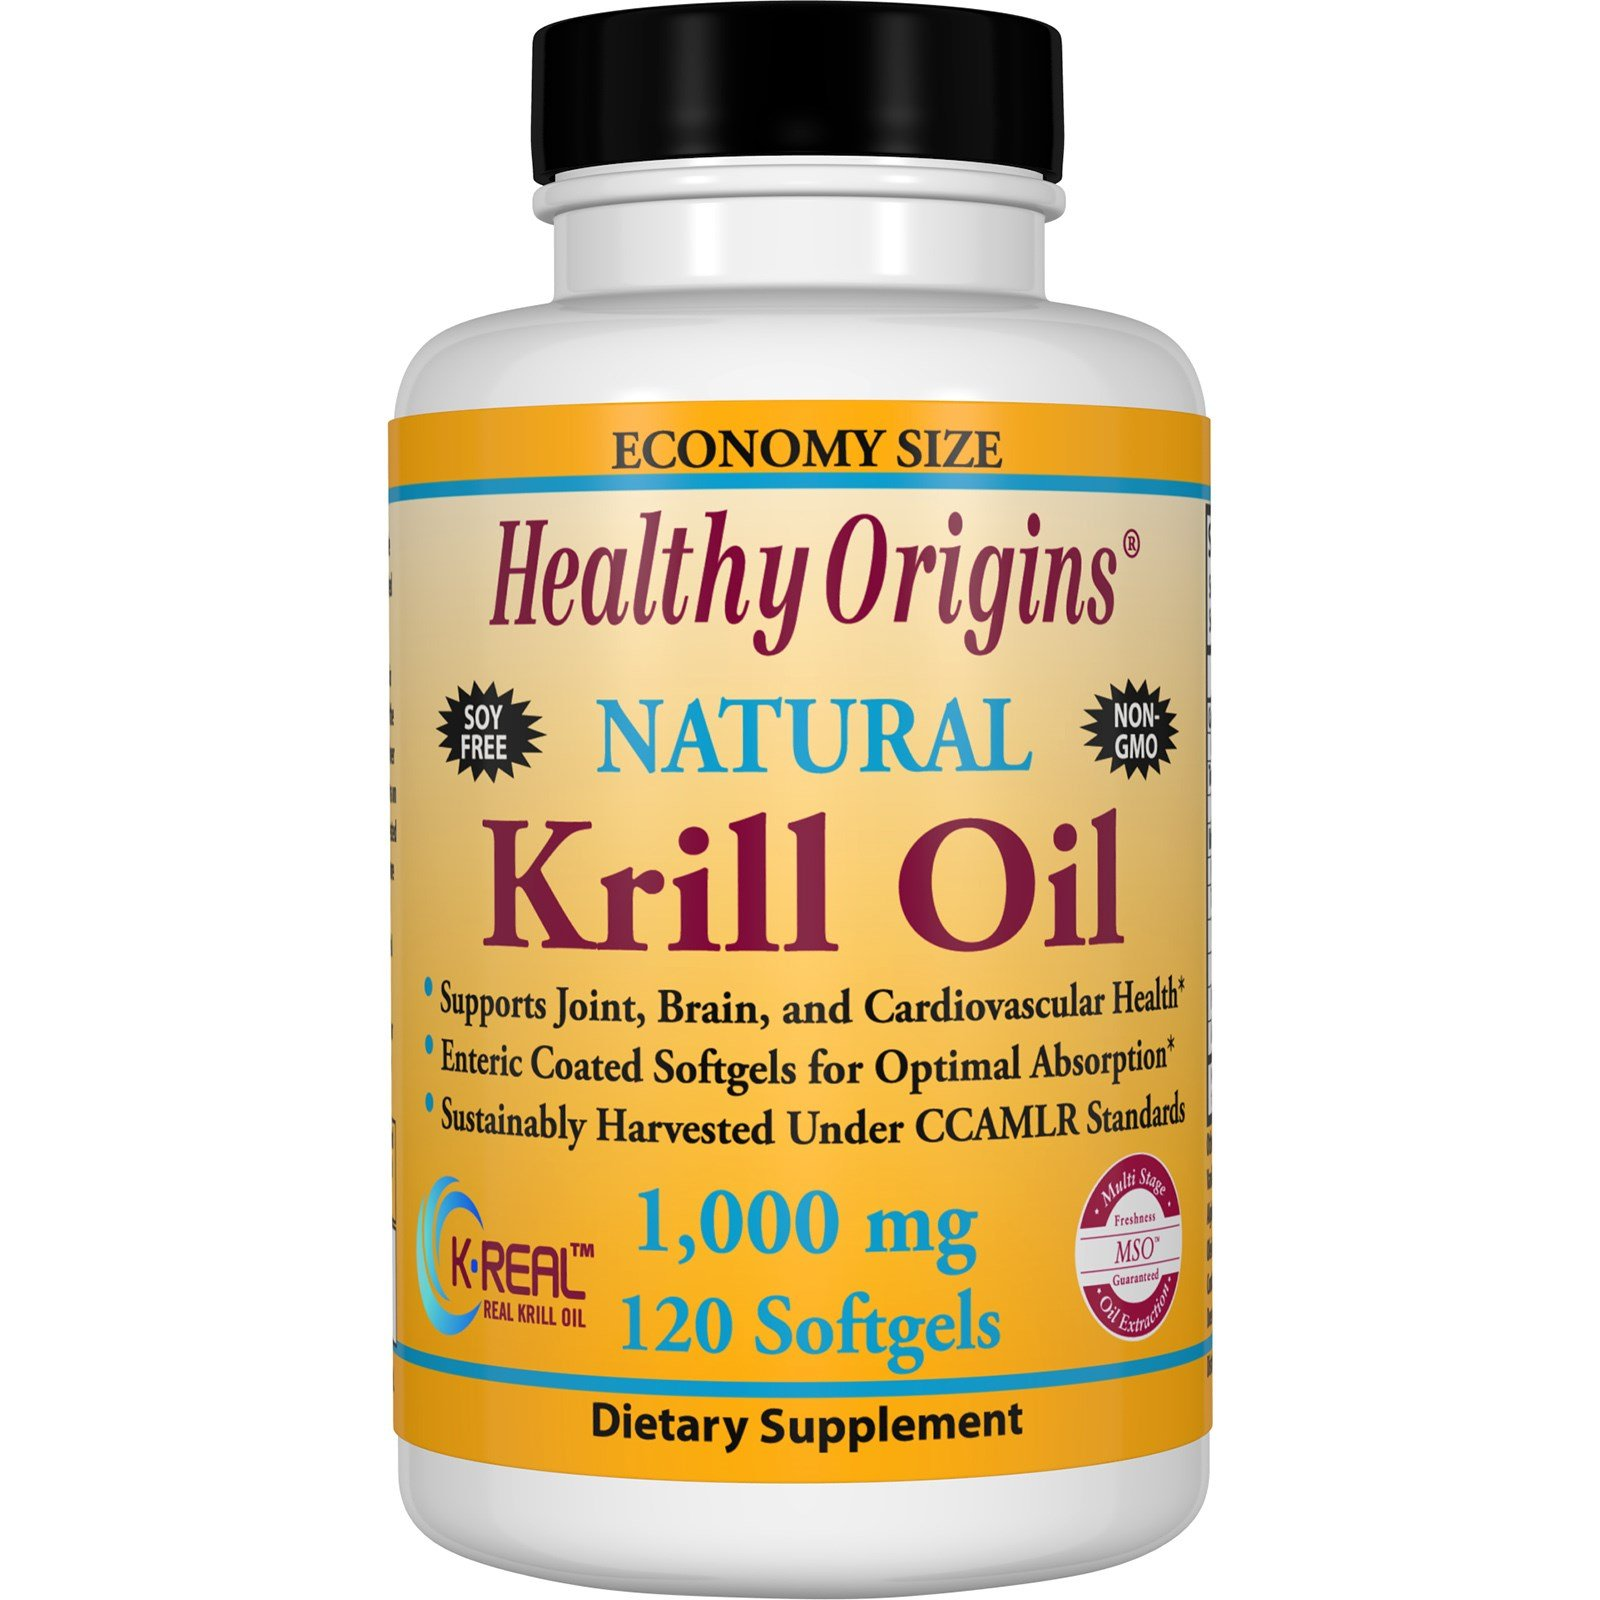 Healthy Origins, Krill Oil, Natural Vanilla Flavor, 1,000 mg, 120 Softgels - 3PC